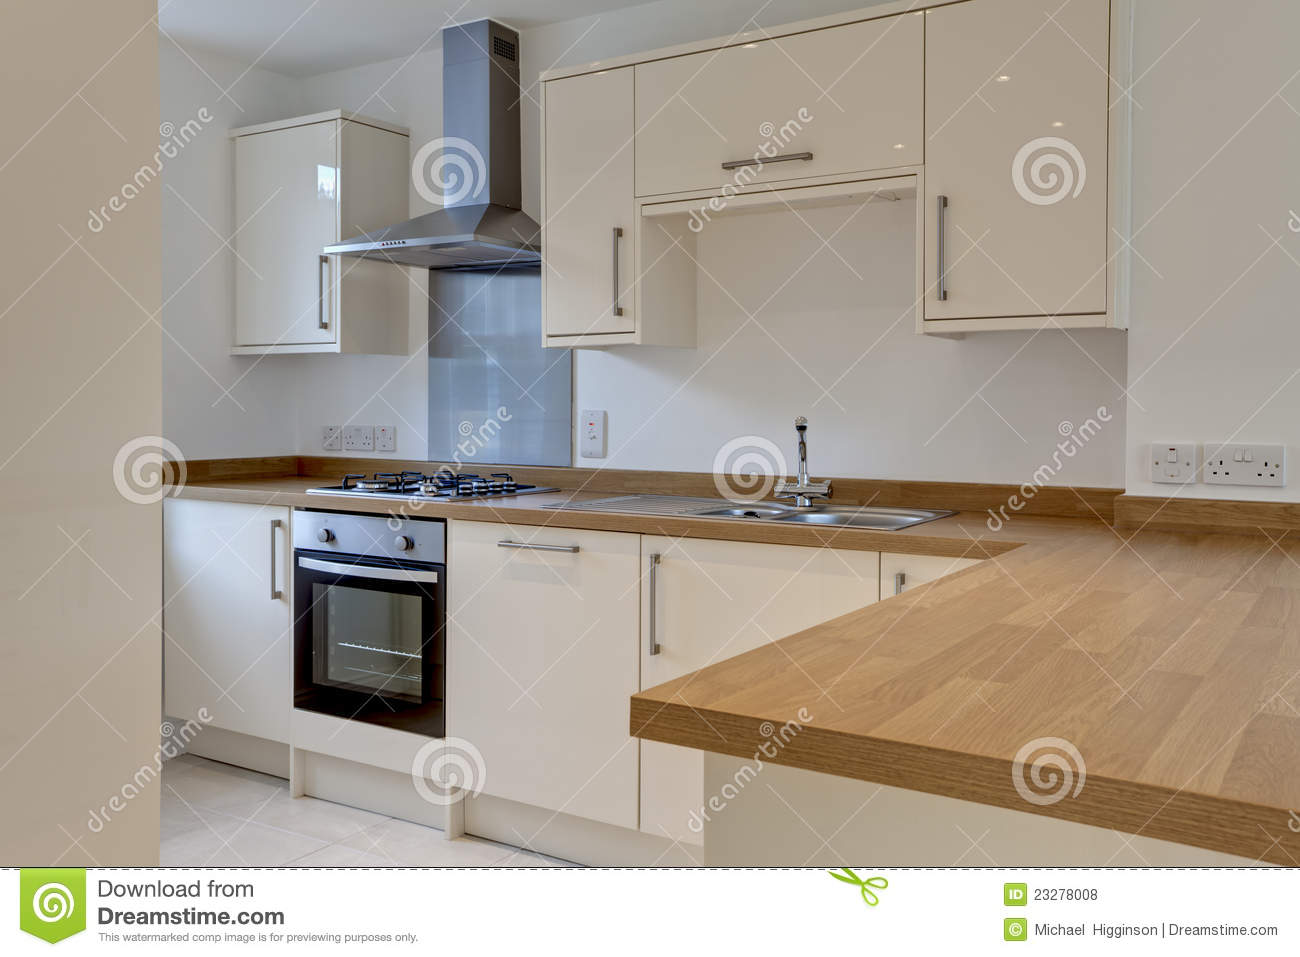 Modern Fitted Kitchen Royalty Free Stock Photos  Image 23278008